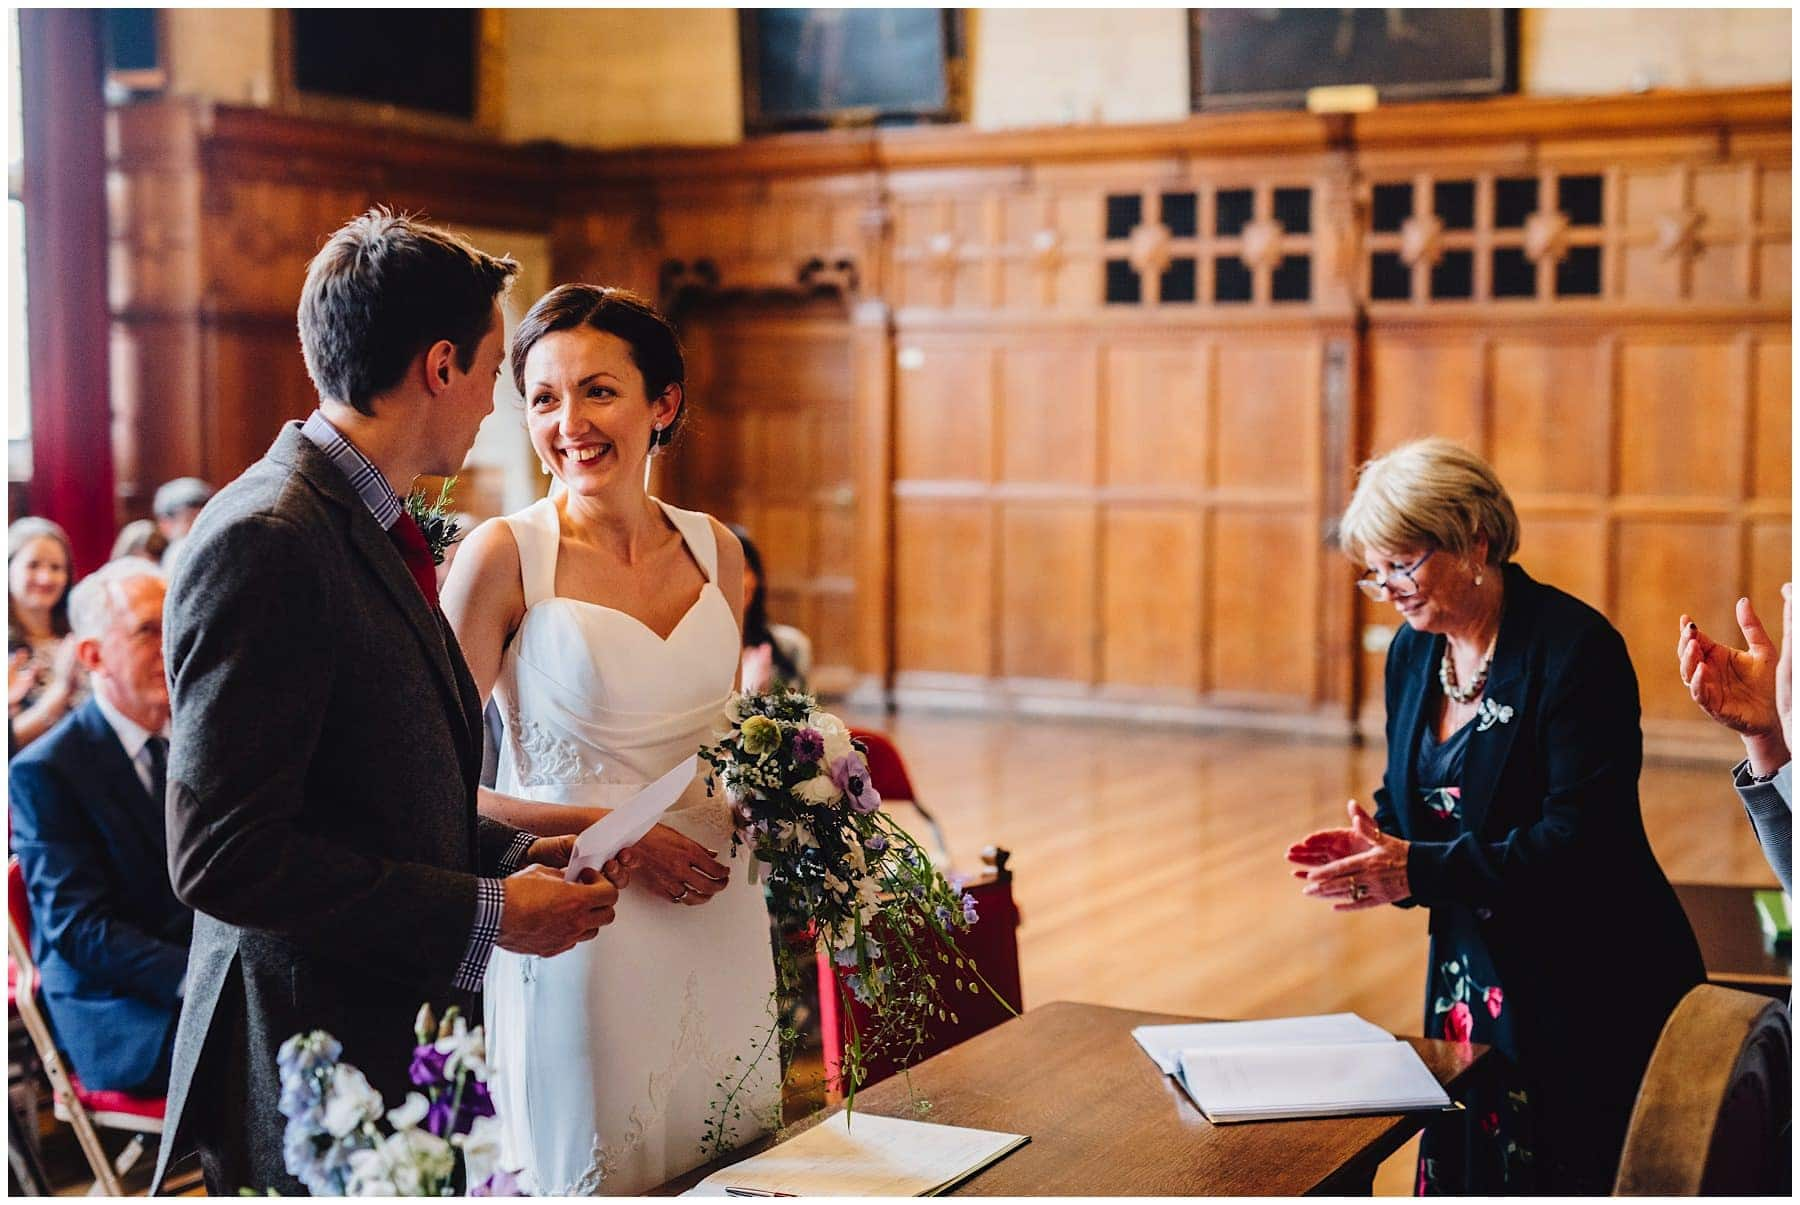 Oxfordshire wedding Photographer J S Coates Wedding Photography. Oxford Town Hall & The Perch Pub 37